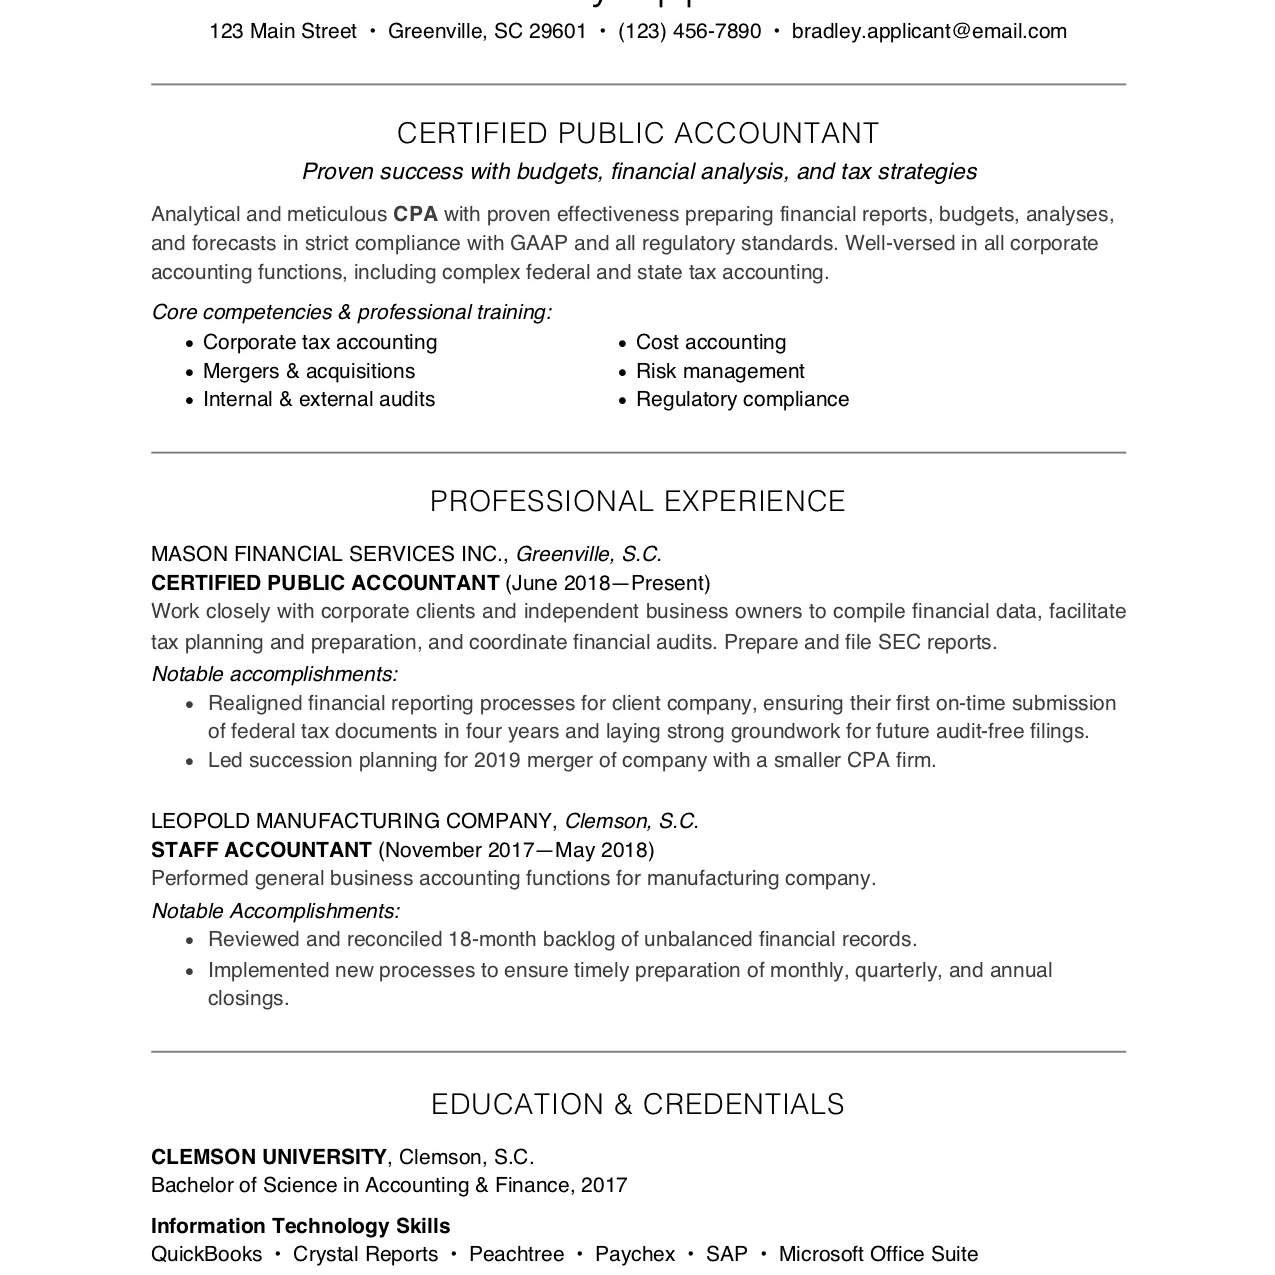 important accounting skills for workplace success core competencies resume guide ups Resume Core Competencies For Accounting Resume